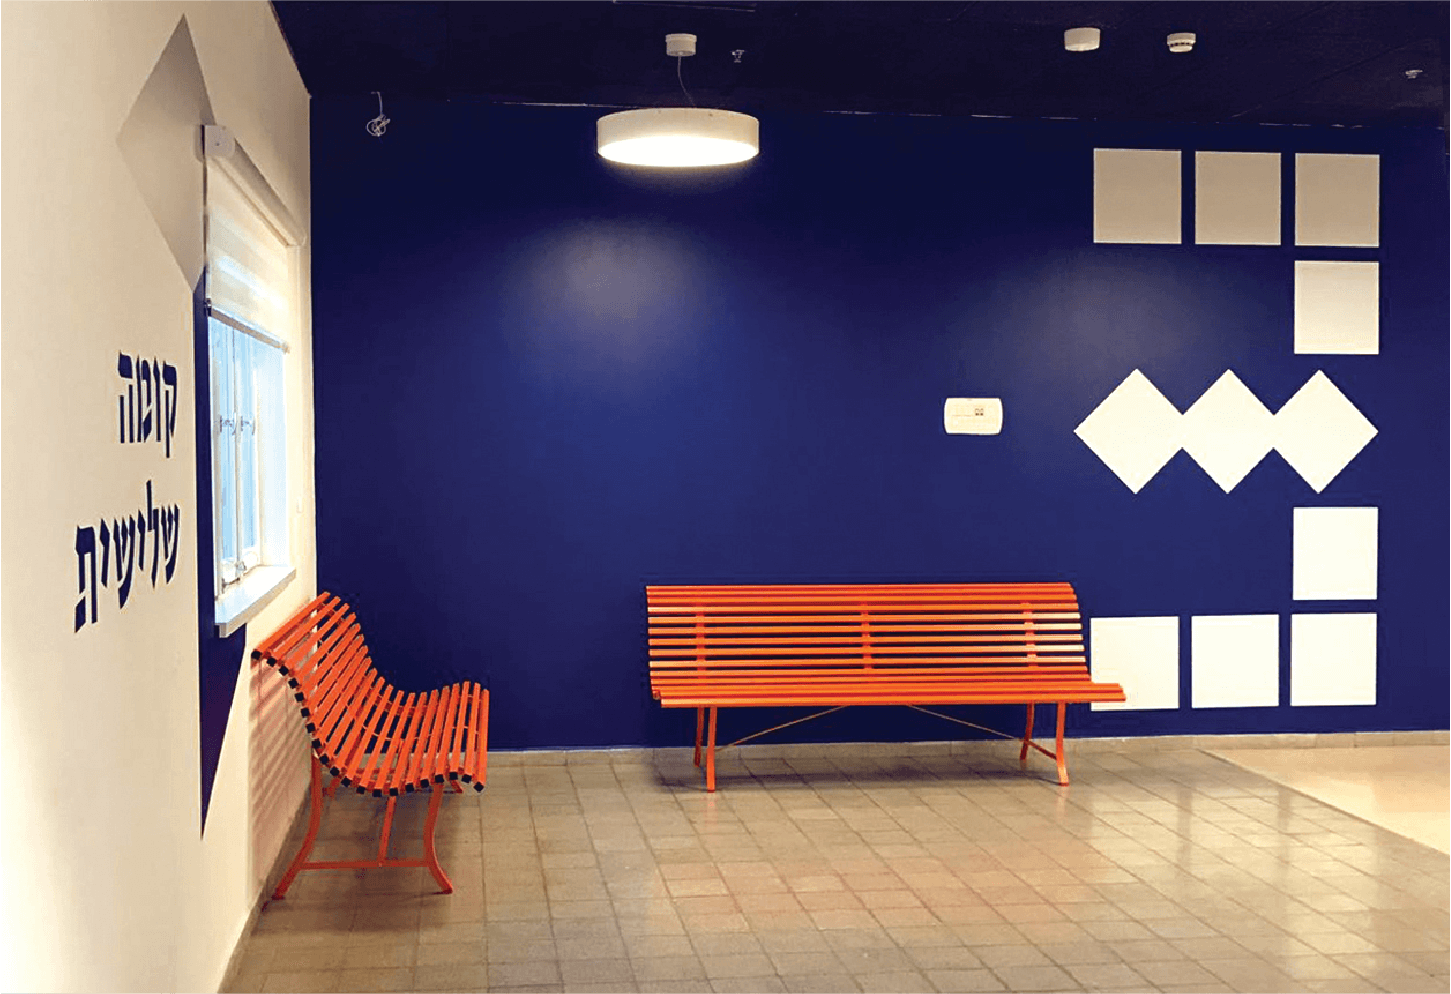 oren lasry tamar bar dayan dov hoz Third floor orange bench and blue wall